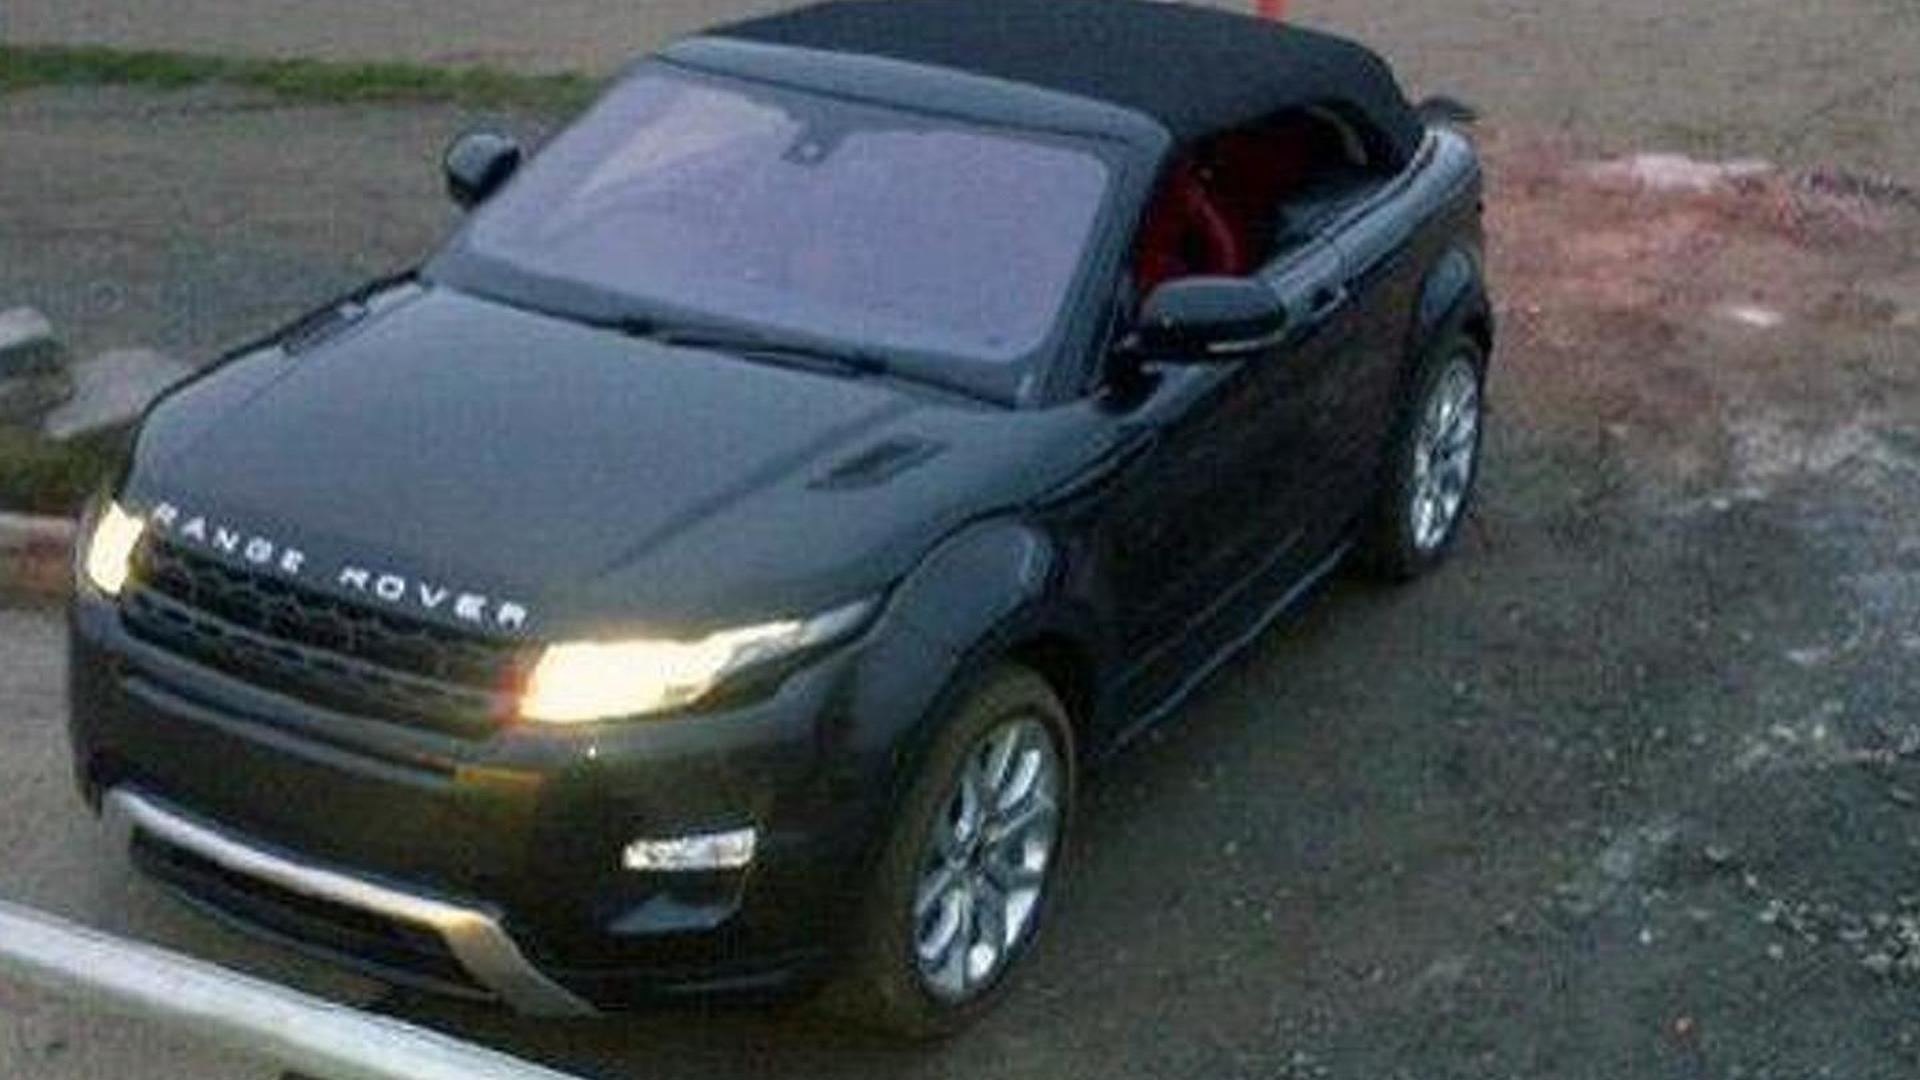 https://icdn-0.motor1.com/images/mgl/oP6nq/s1/2012-298745-land-rover-evoque-cabriolet-concept-caught-with-top-up1.jpg